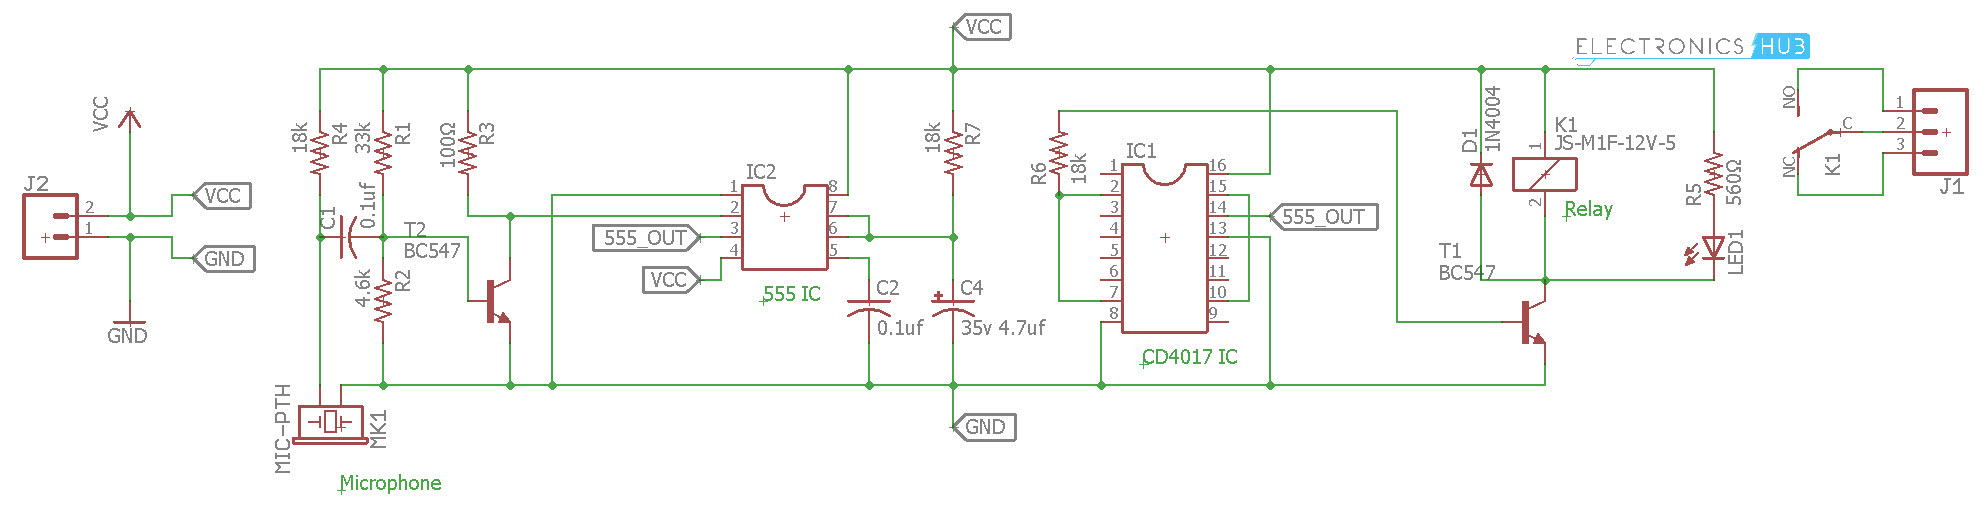 Clap Switch Circuit For Devices Working And Applications 3 Way Wiring Diagram Multiple Circuits Using 555 4017